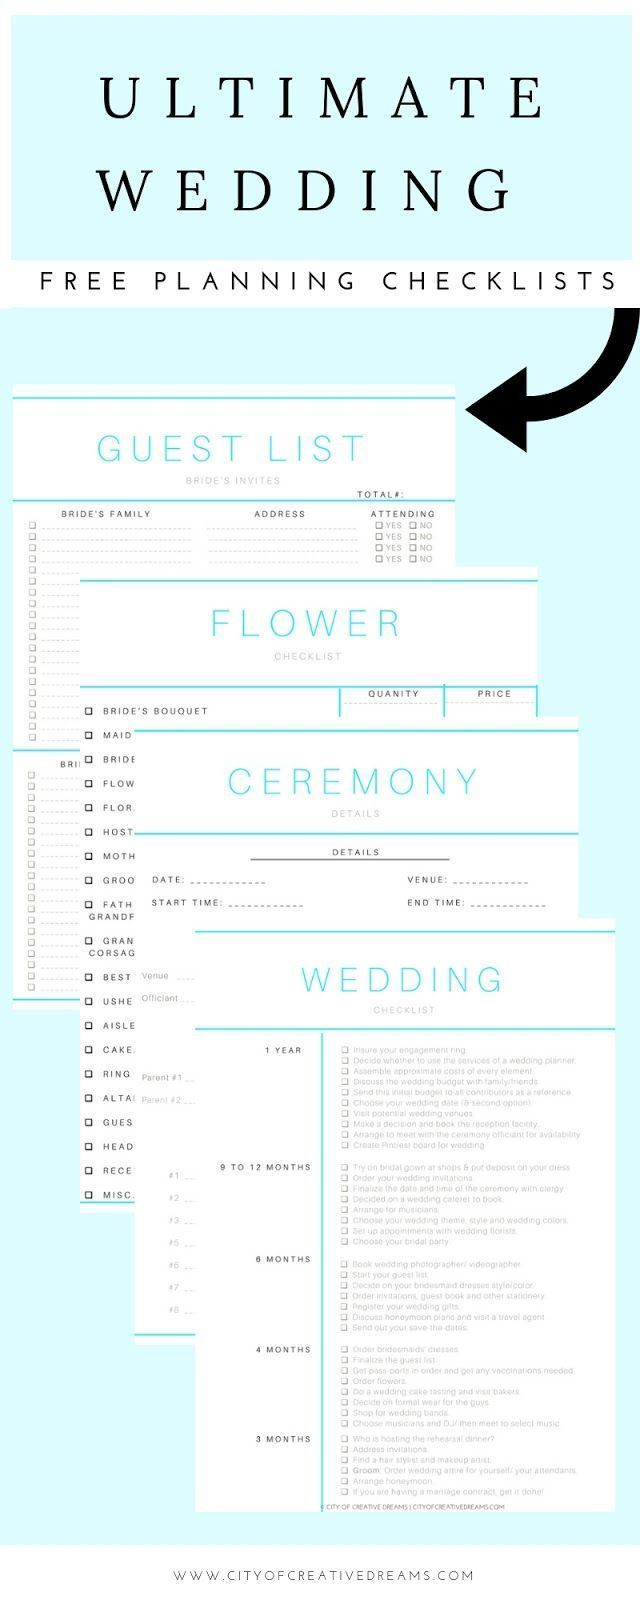 Wedding Planning Basics What Do You Need To Know Ultimate Wedding Planning Checklist Wedding Checklist Budget Wedding Planning Checklist Printable